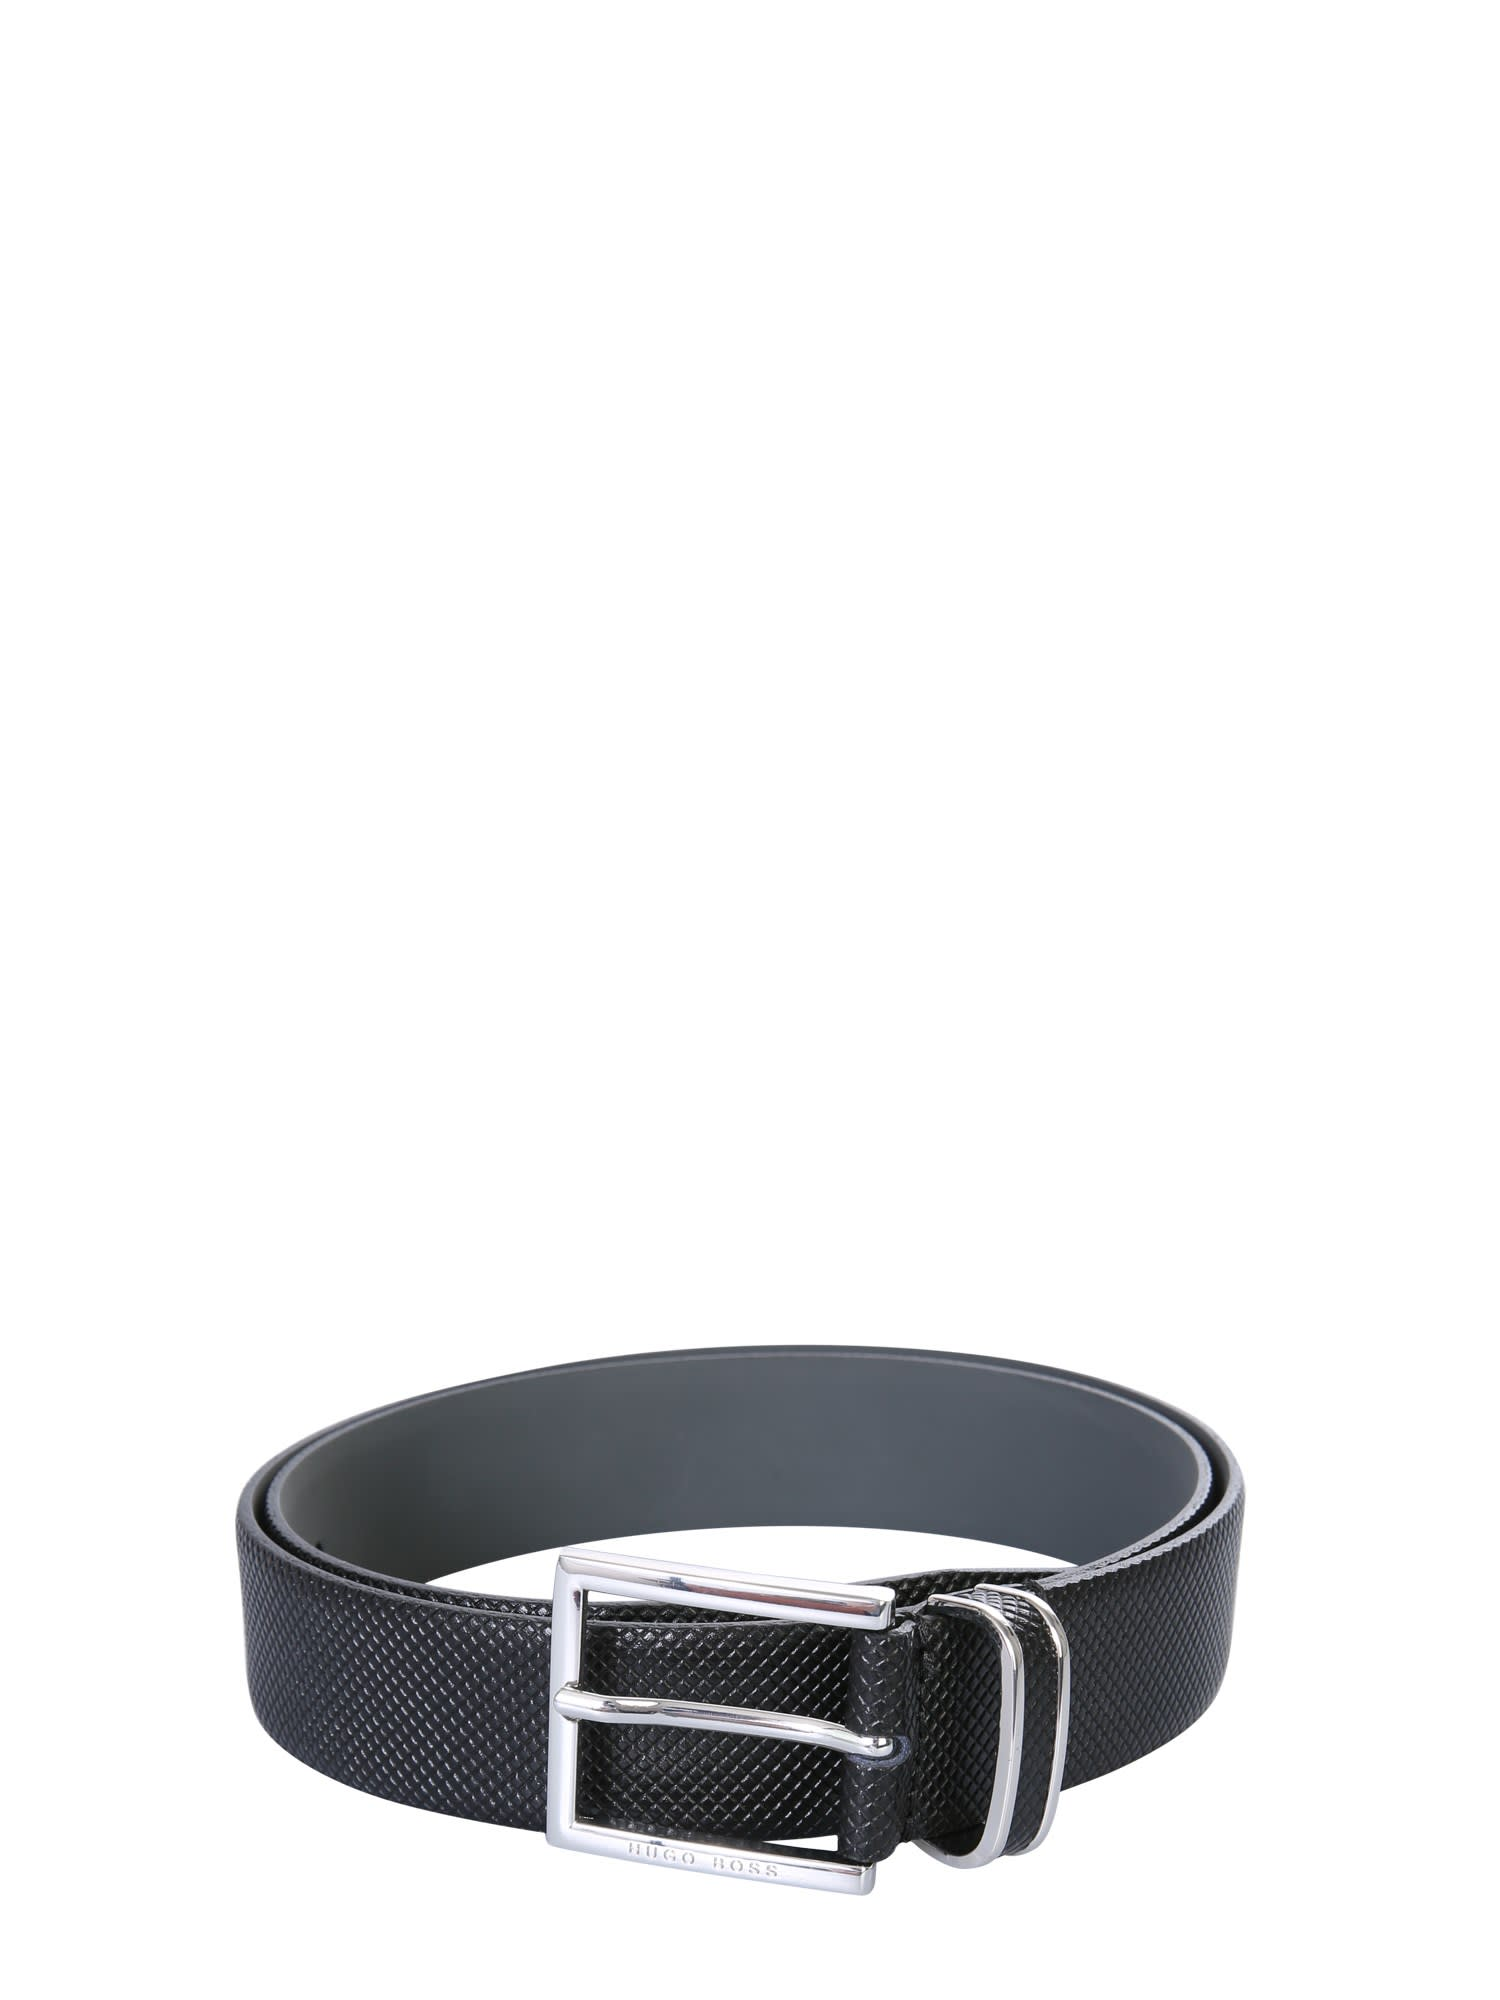 Hugo Boss Canzio Belt